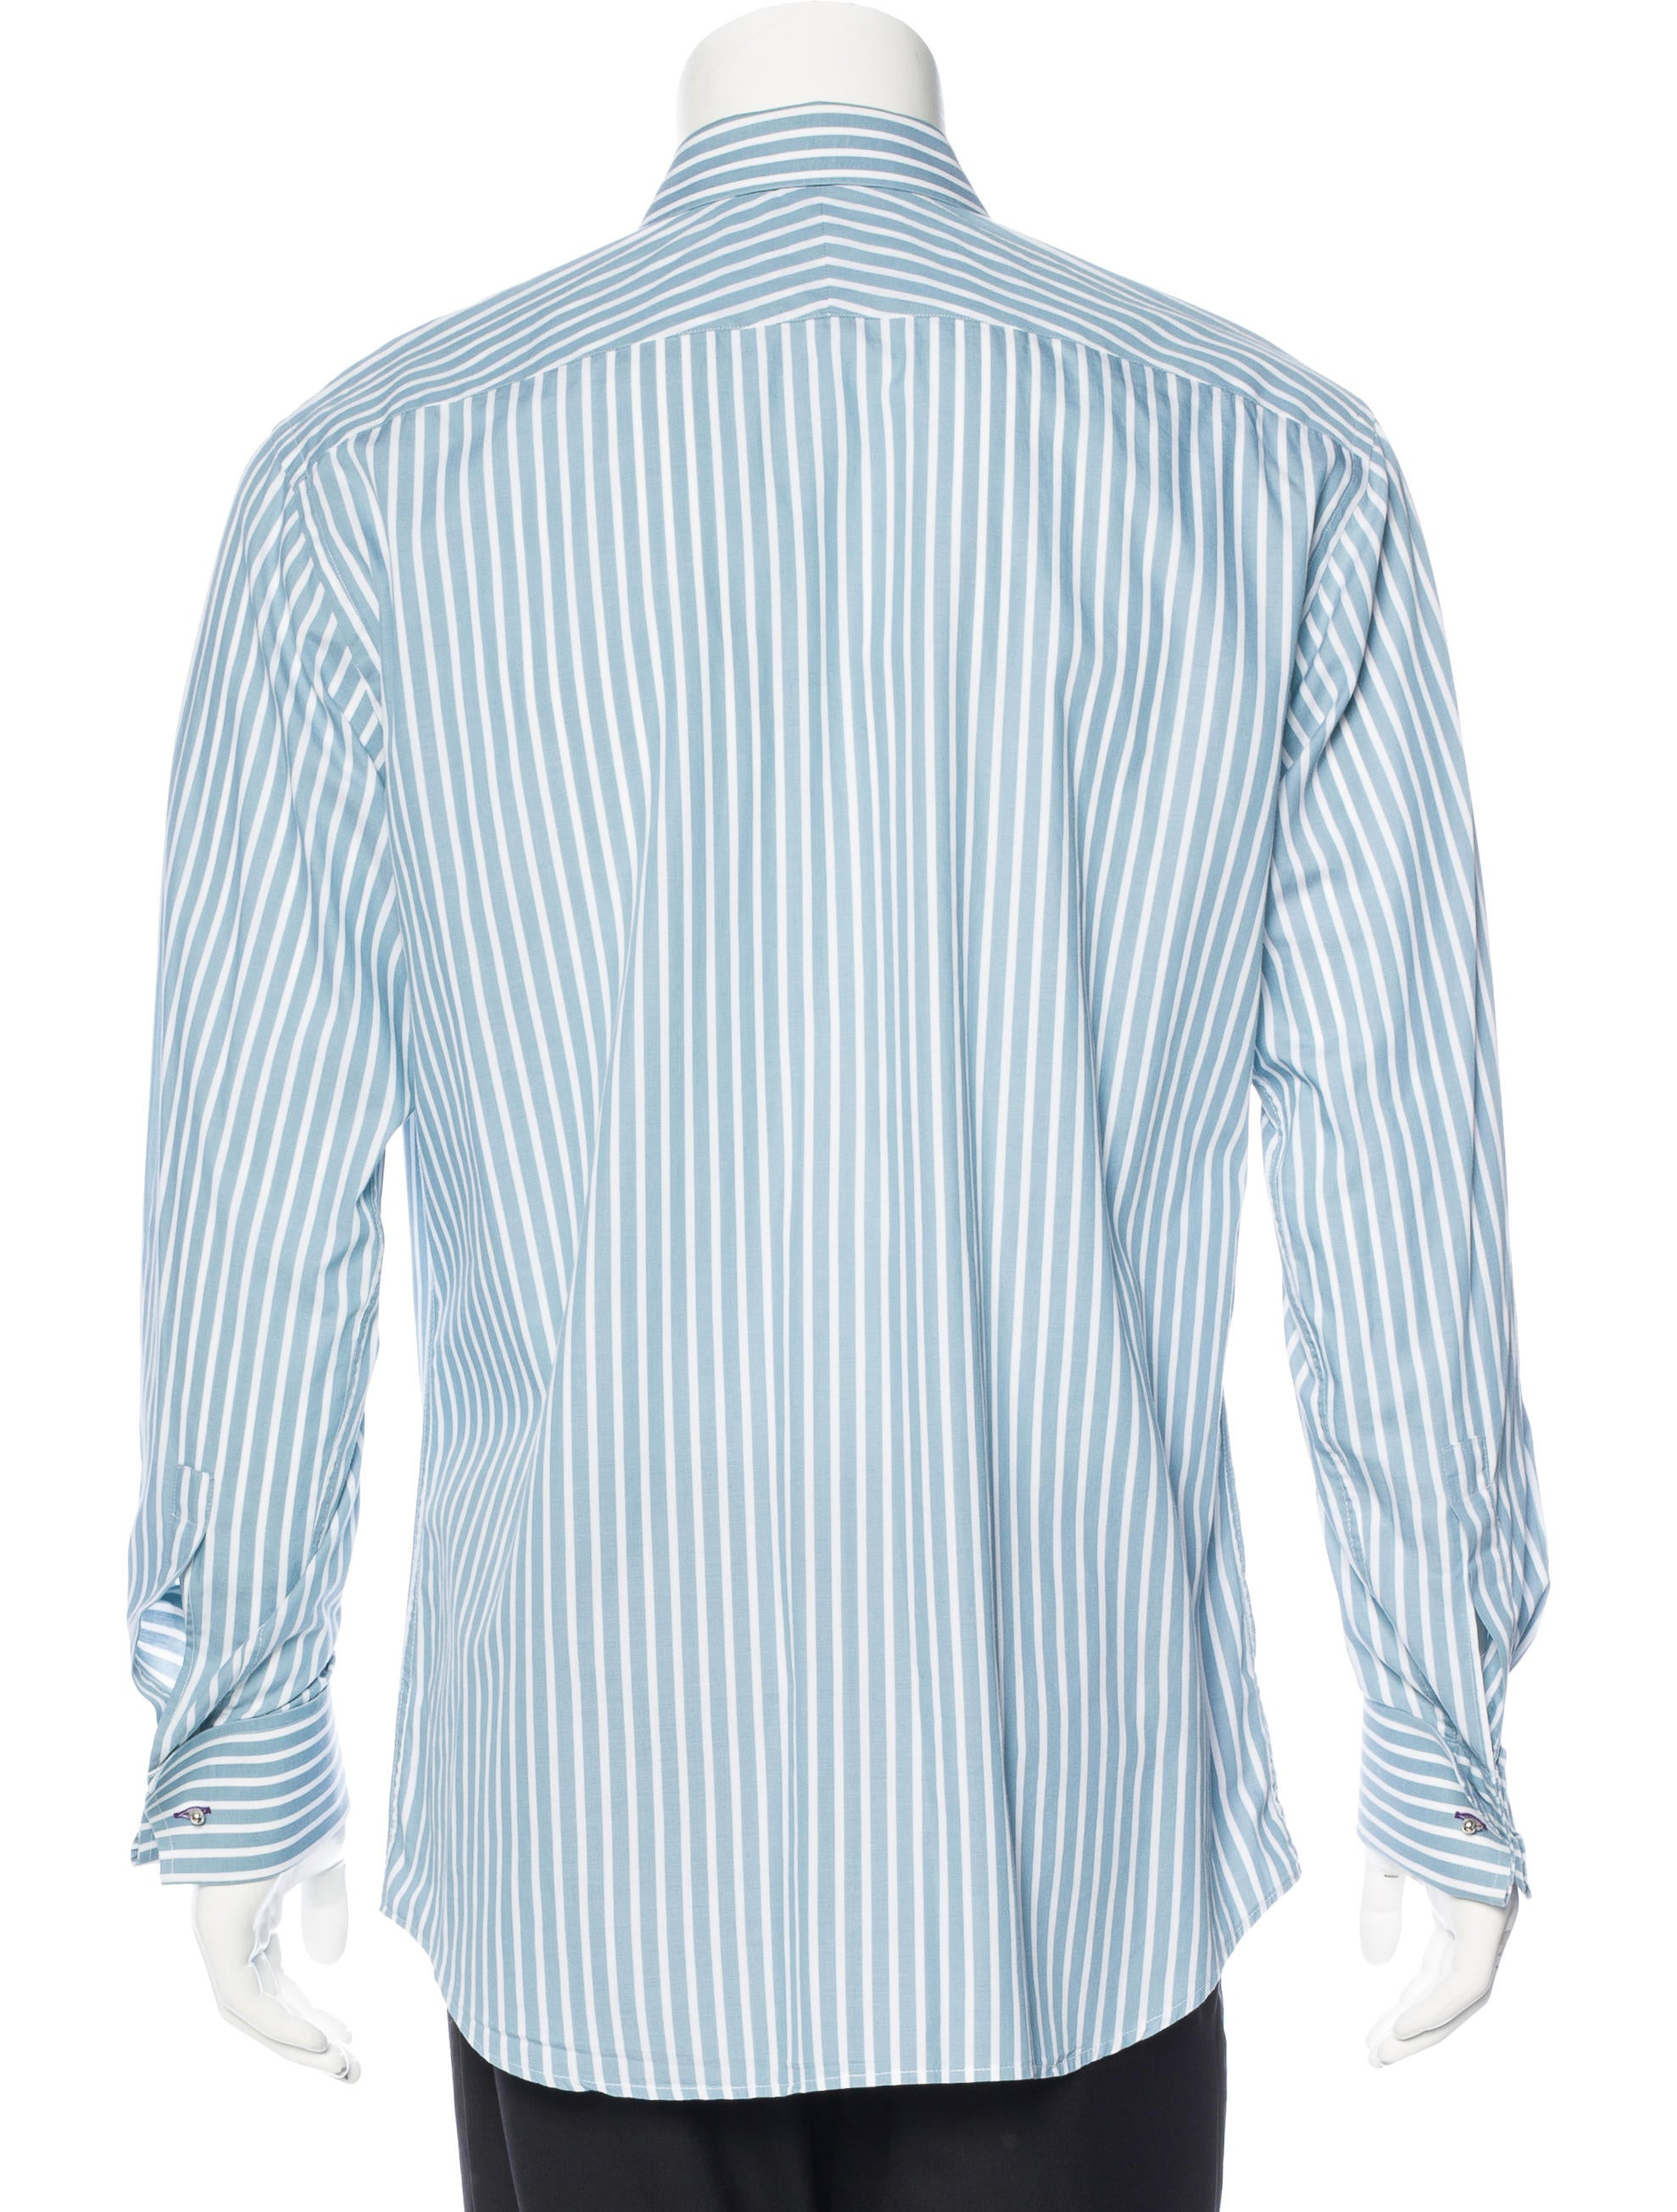 paul smith striped french cuff shirt clothing wps23677. Black Bedroom Furniture Sets. Home Design Ideas